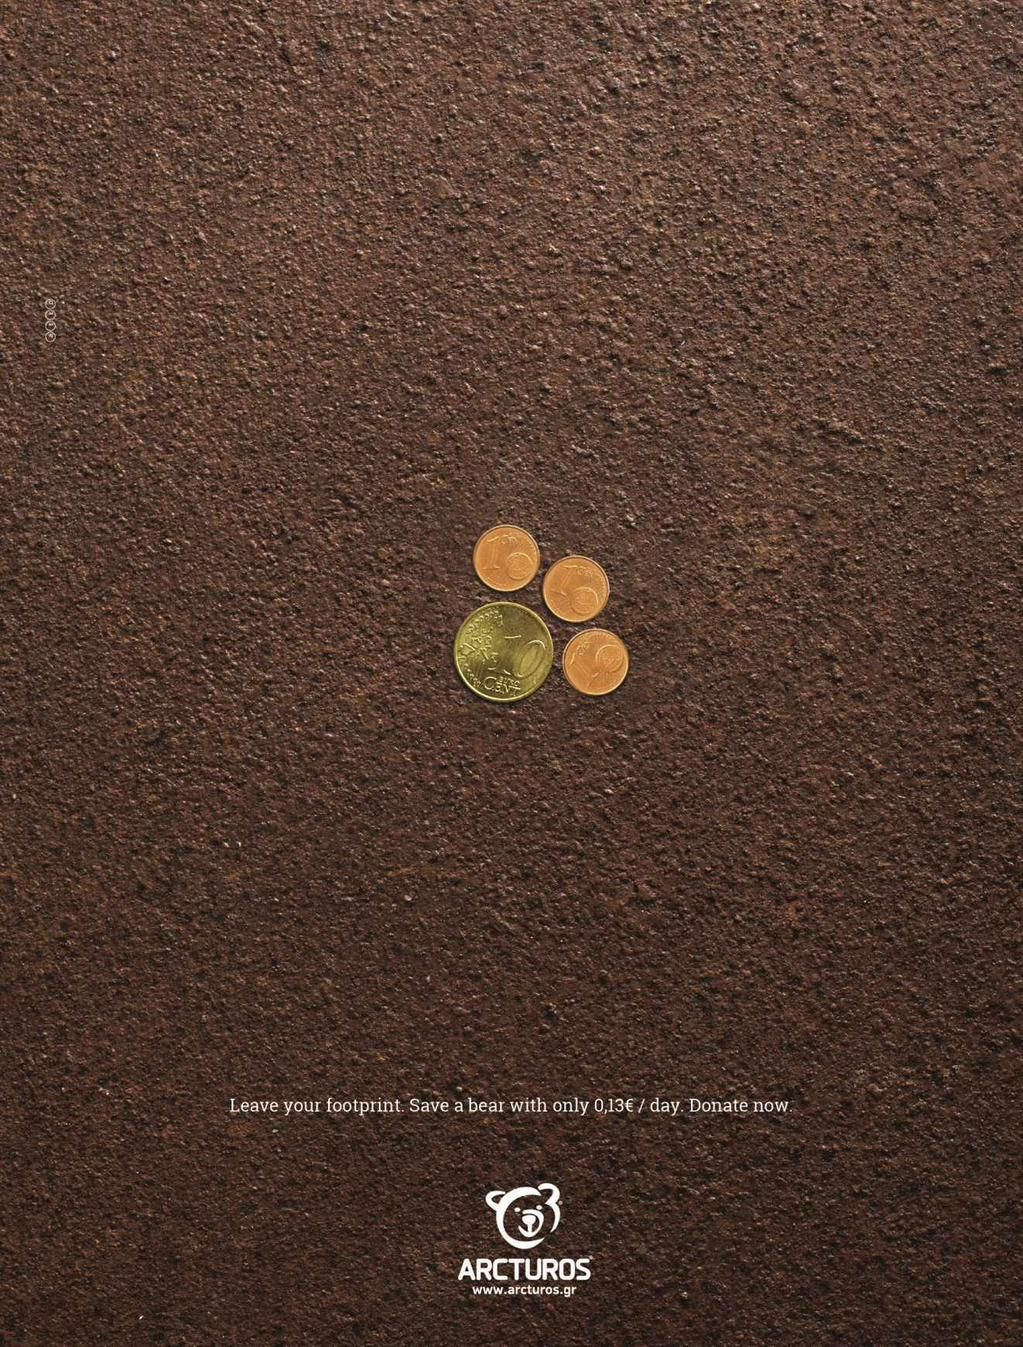 New Ad: Arcturos: Footprint http://ift.tt/1CZyeJd  #advertising